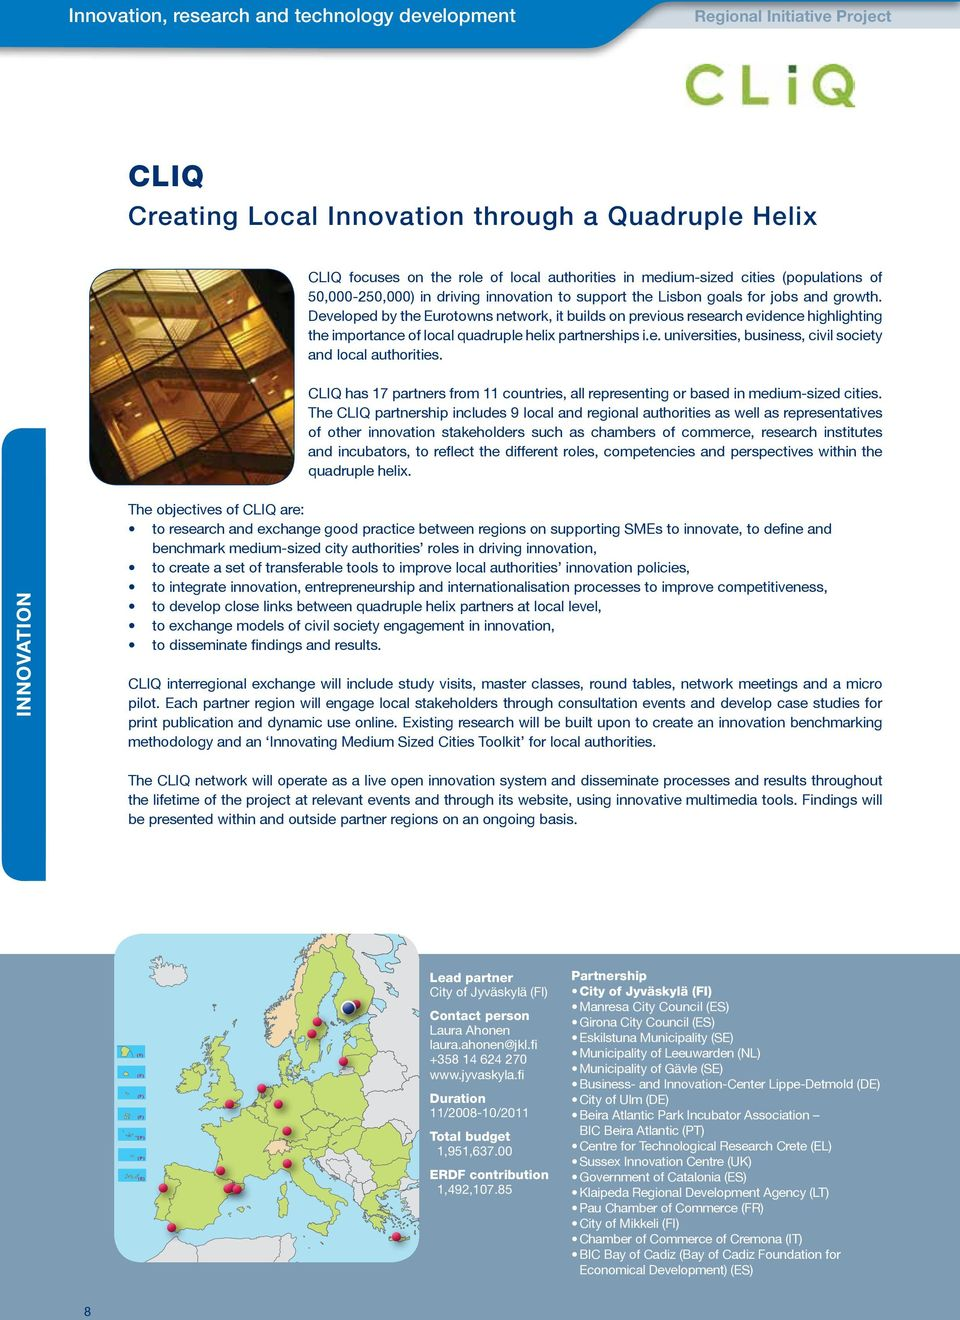 Developed by the Eurotowns network, it builds on previous research evidence highlighting the importance of local quadruple helix partnerships i.e. universities, business, civil society and local authorities.